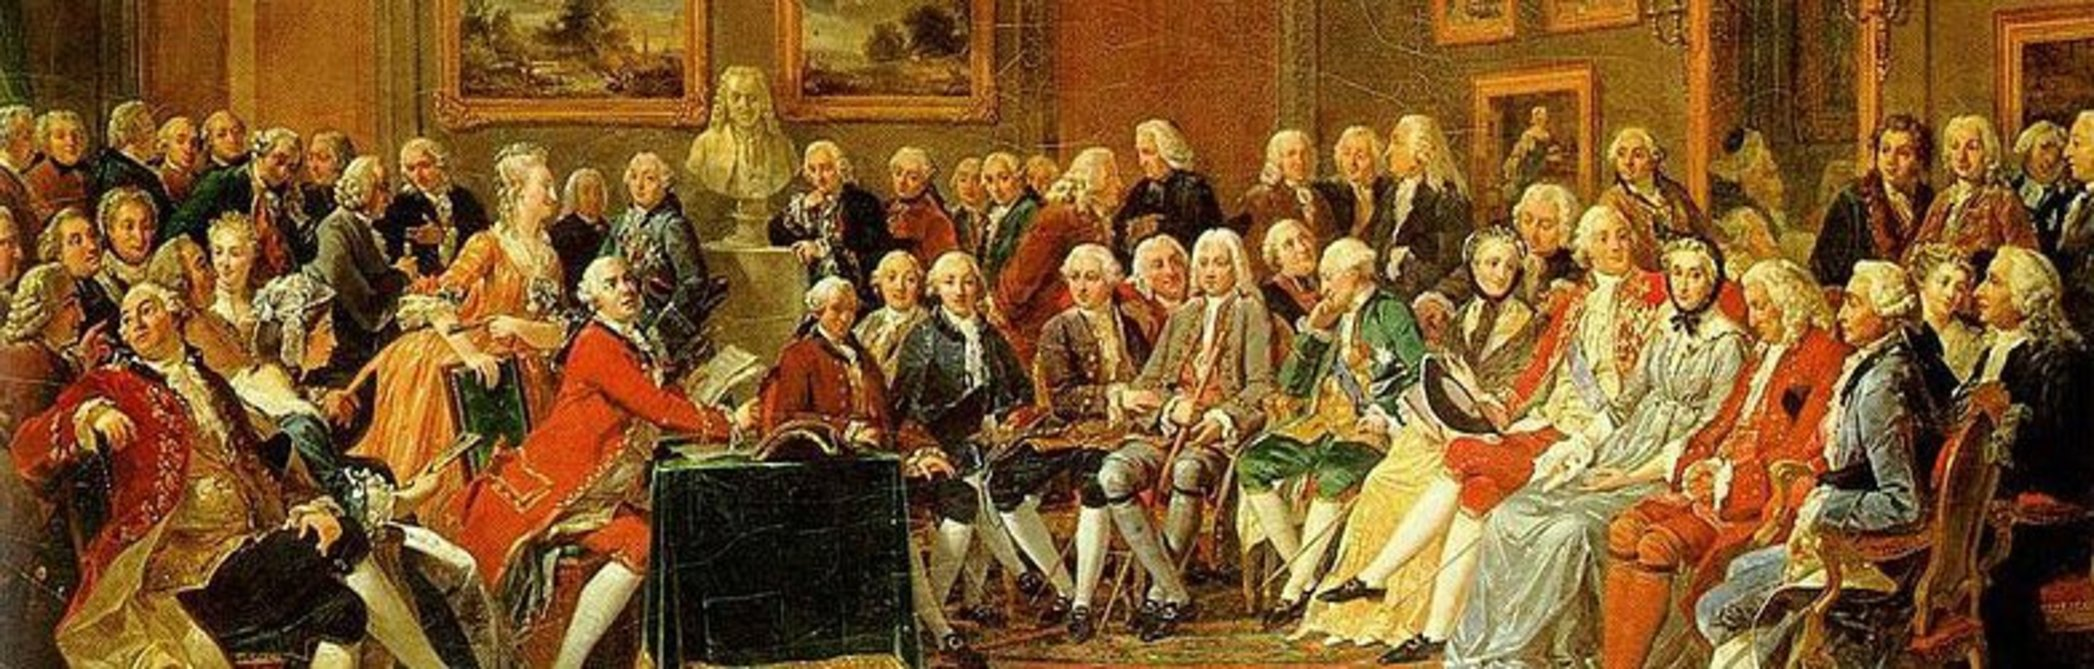 enlightenment in colonial society essay Definitions of the important terms you need to know about in order to understand the enlightenment essay topics quizzes unshackled by the conventions of society.